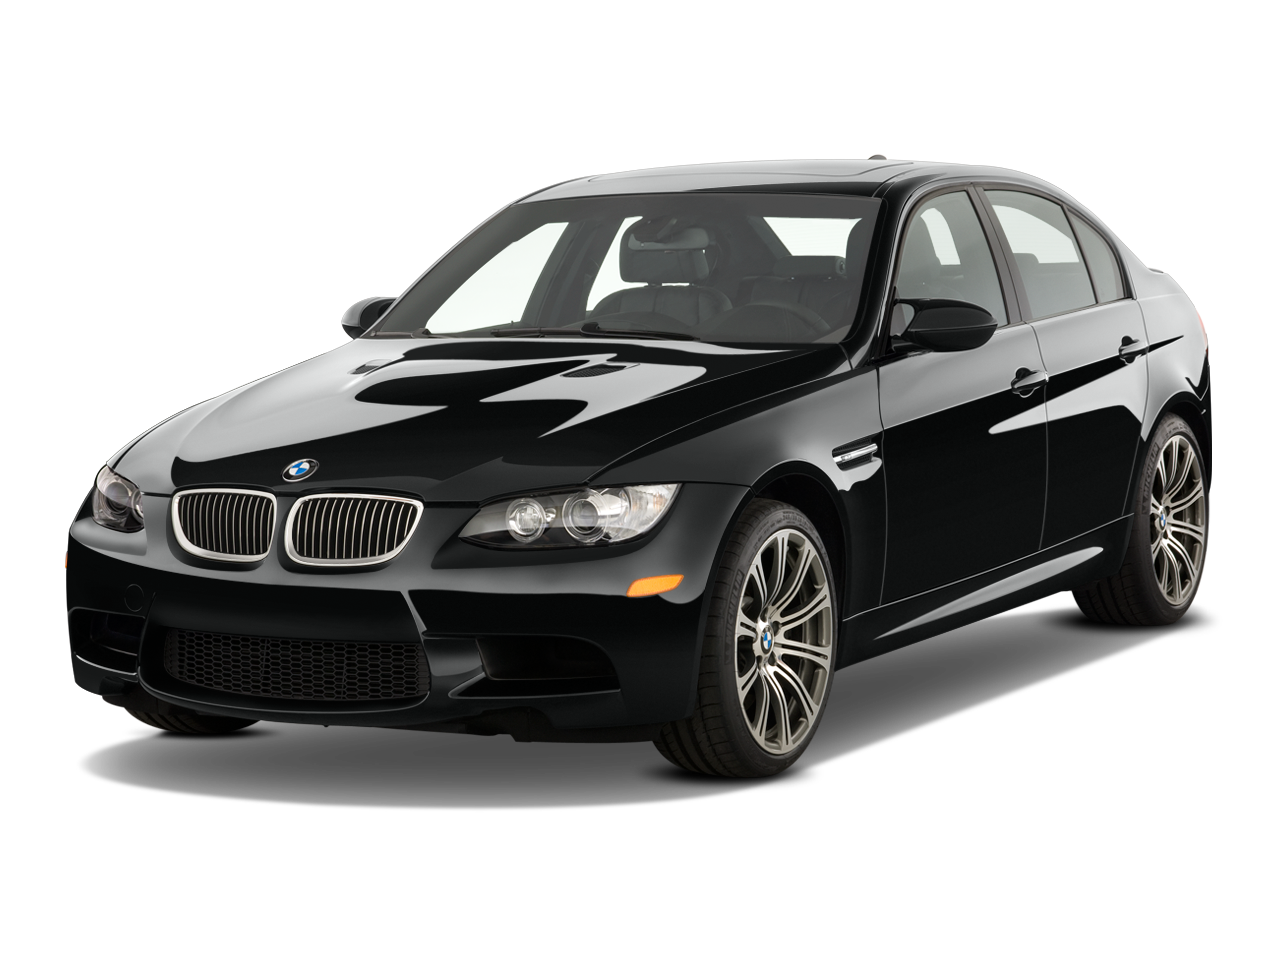 2009 bmw 335i coupe bmw luxury sport coupe review. Black Bedroom Furniture Sets. Home Design Ideas